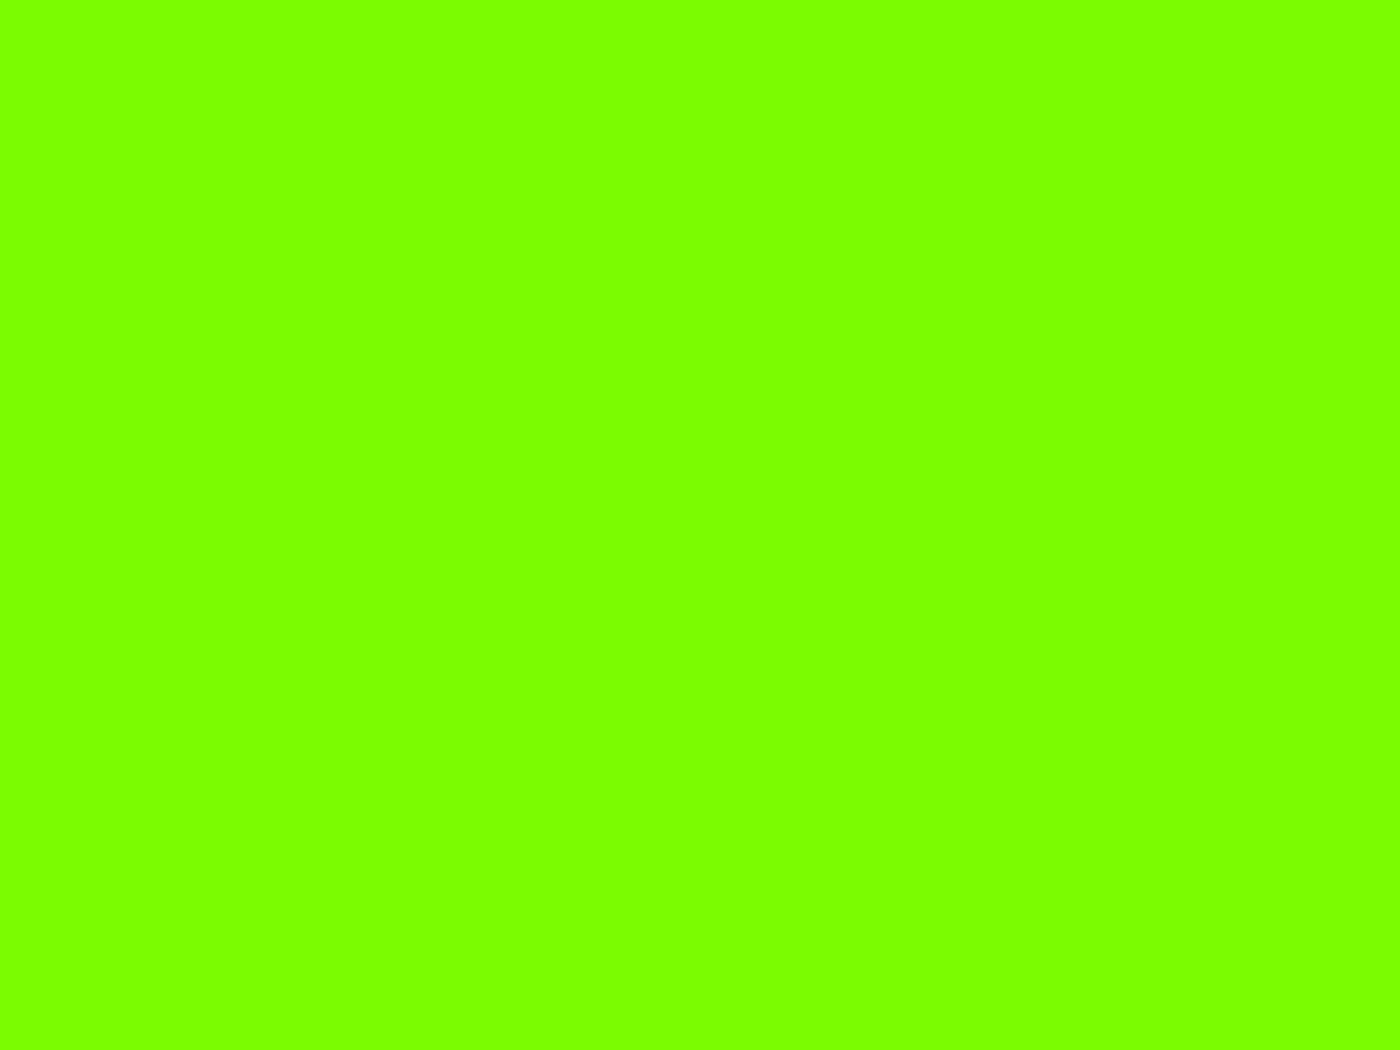 1400x1050 Lawn Green Solid Color Background